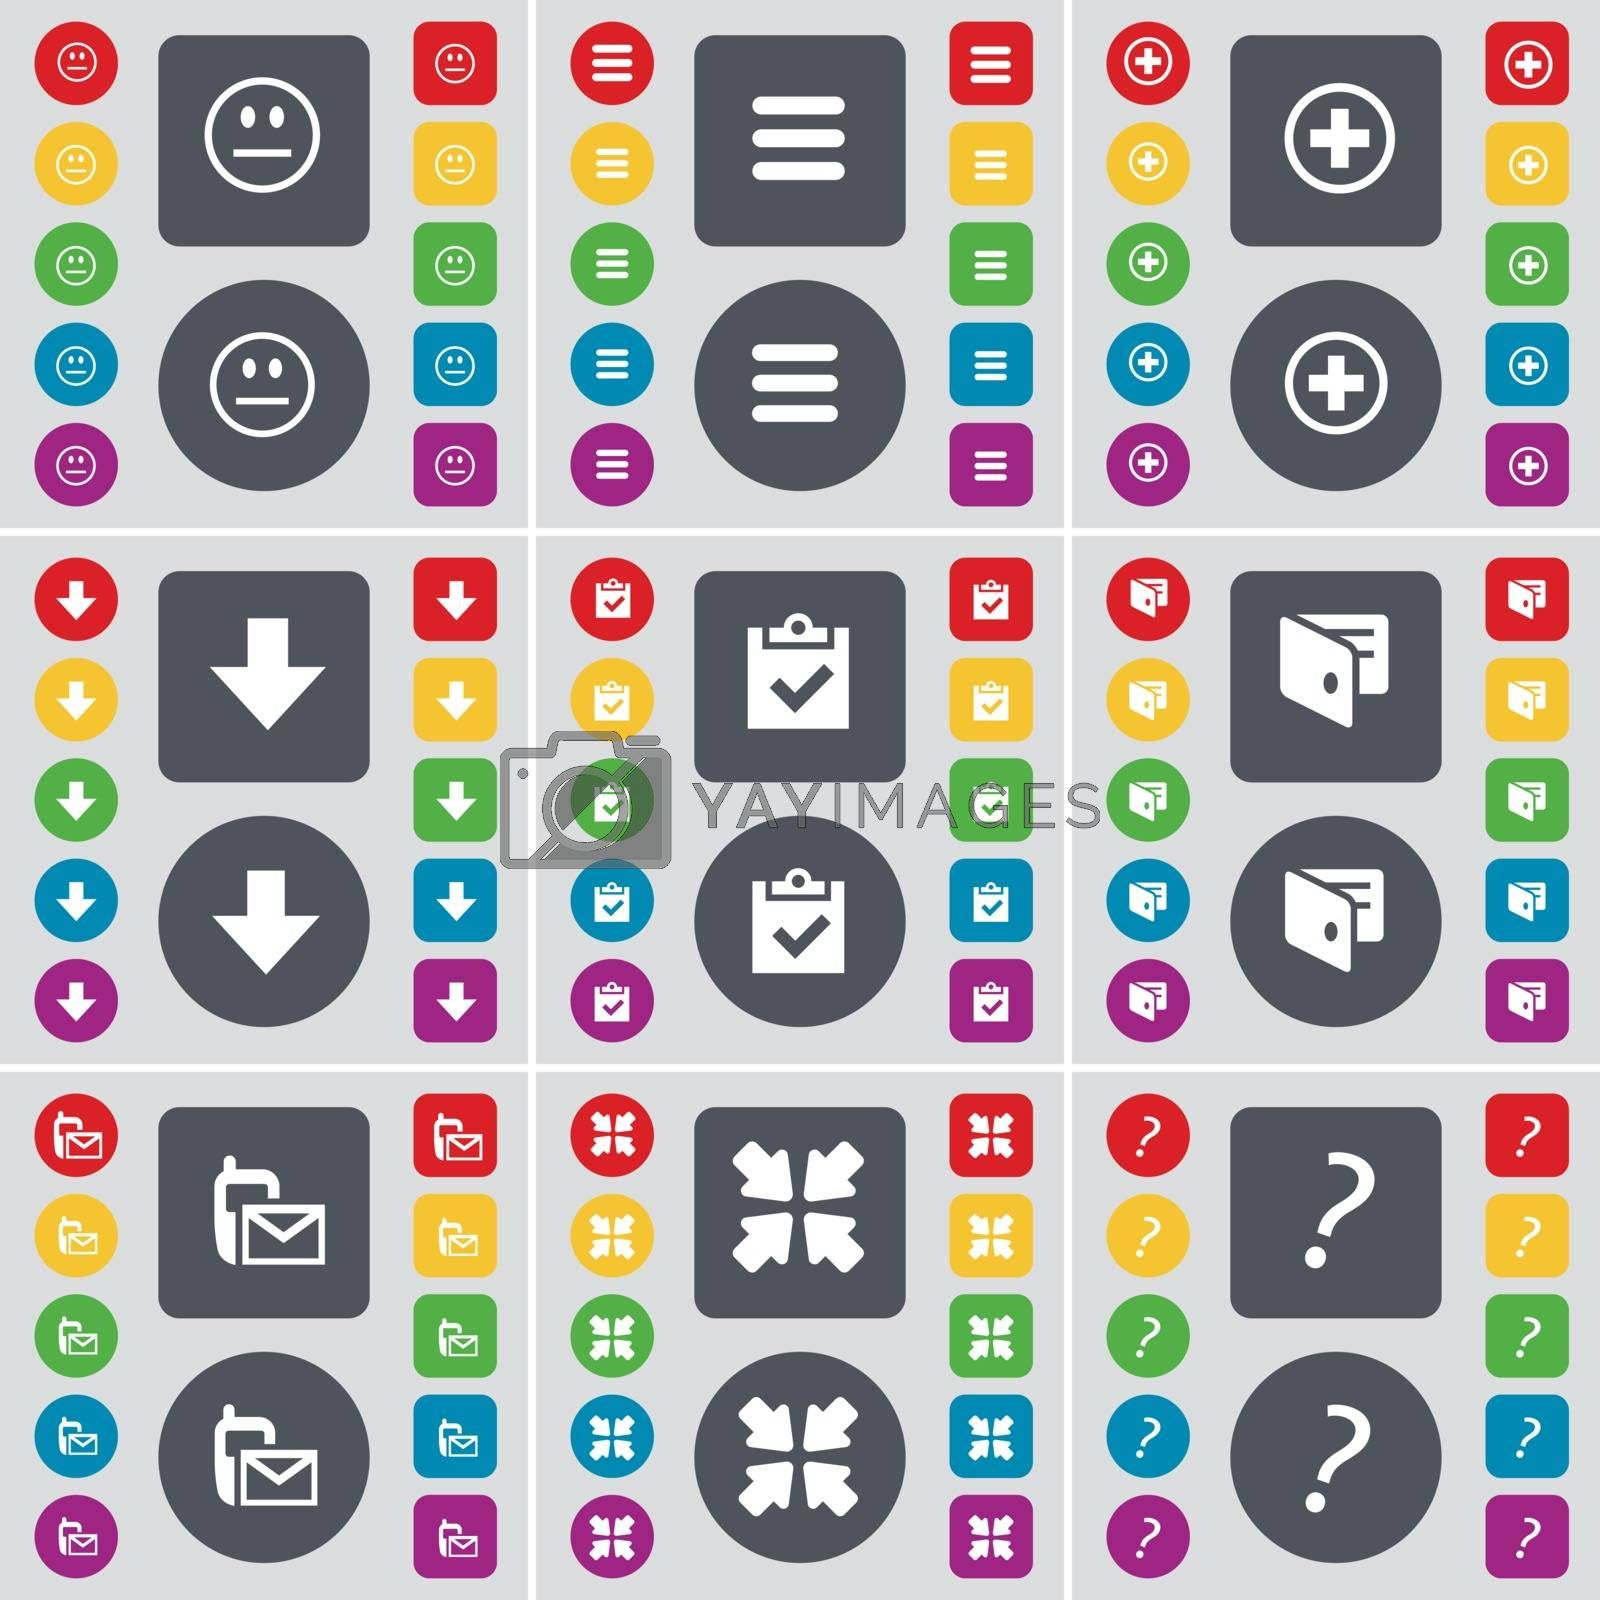 Royalty free image of Smile, Apps, Plus, Arrow down, Survey, Wallet, SMS, Deploying screen, Question mark icon symbol. A large set of flat, colored buttons for your design. Vector by serhii_lohvyniuk